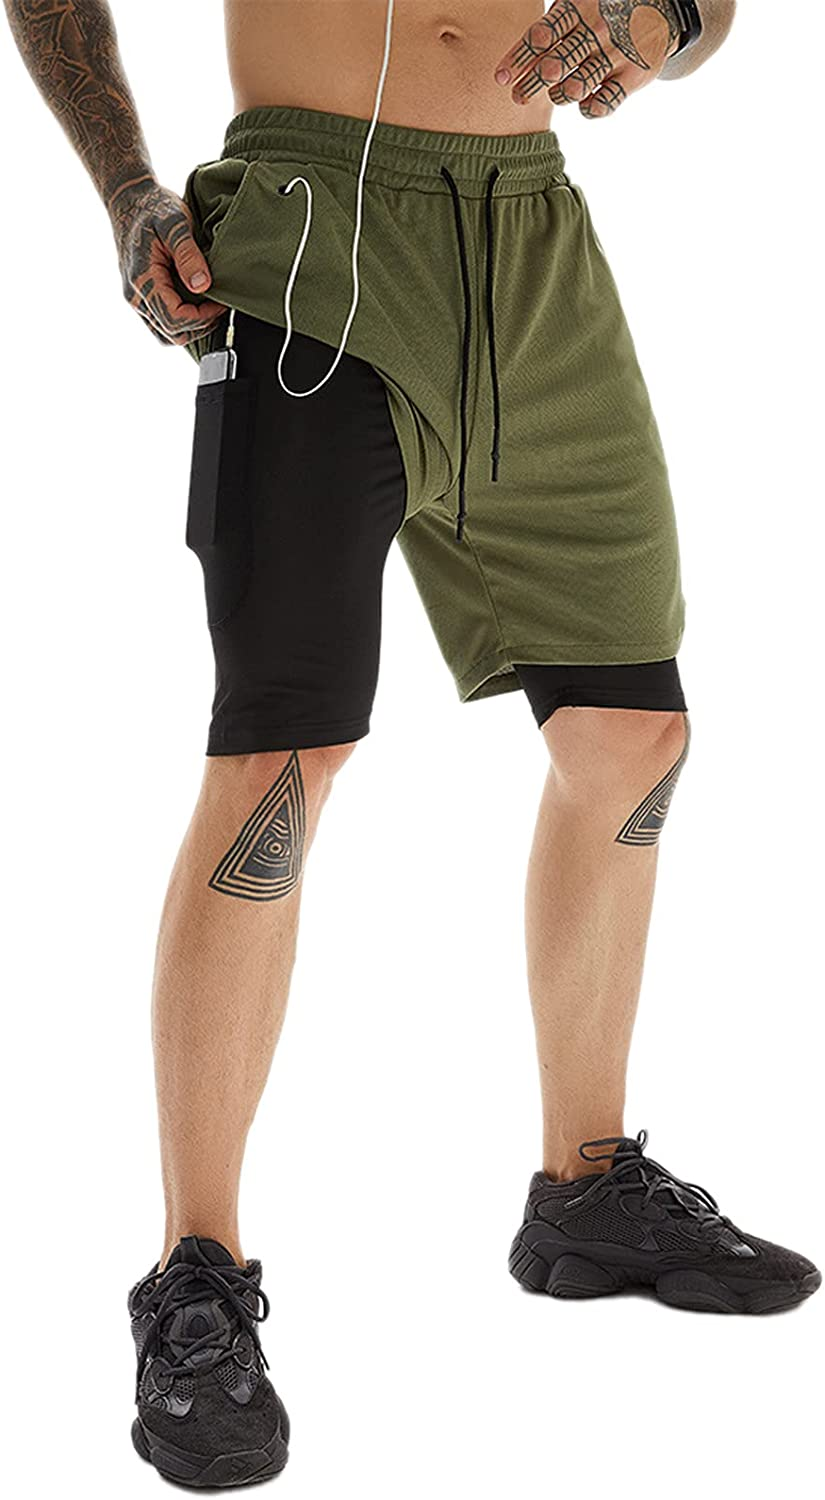 WSLCN Men's 2-in-1 Running Shorts Quick Dry Breathable with Inner Compression